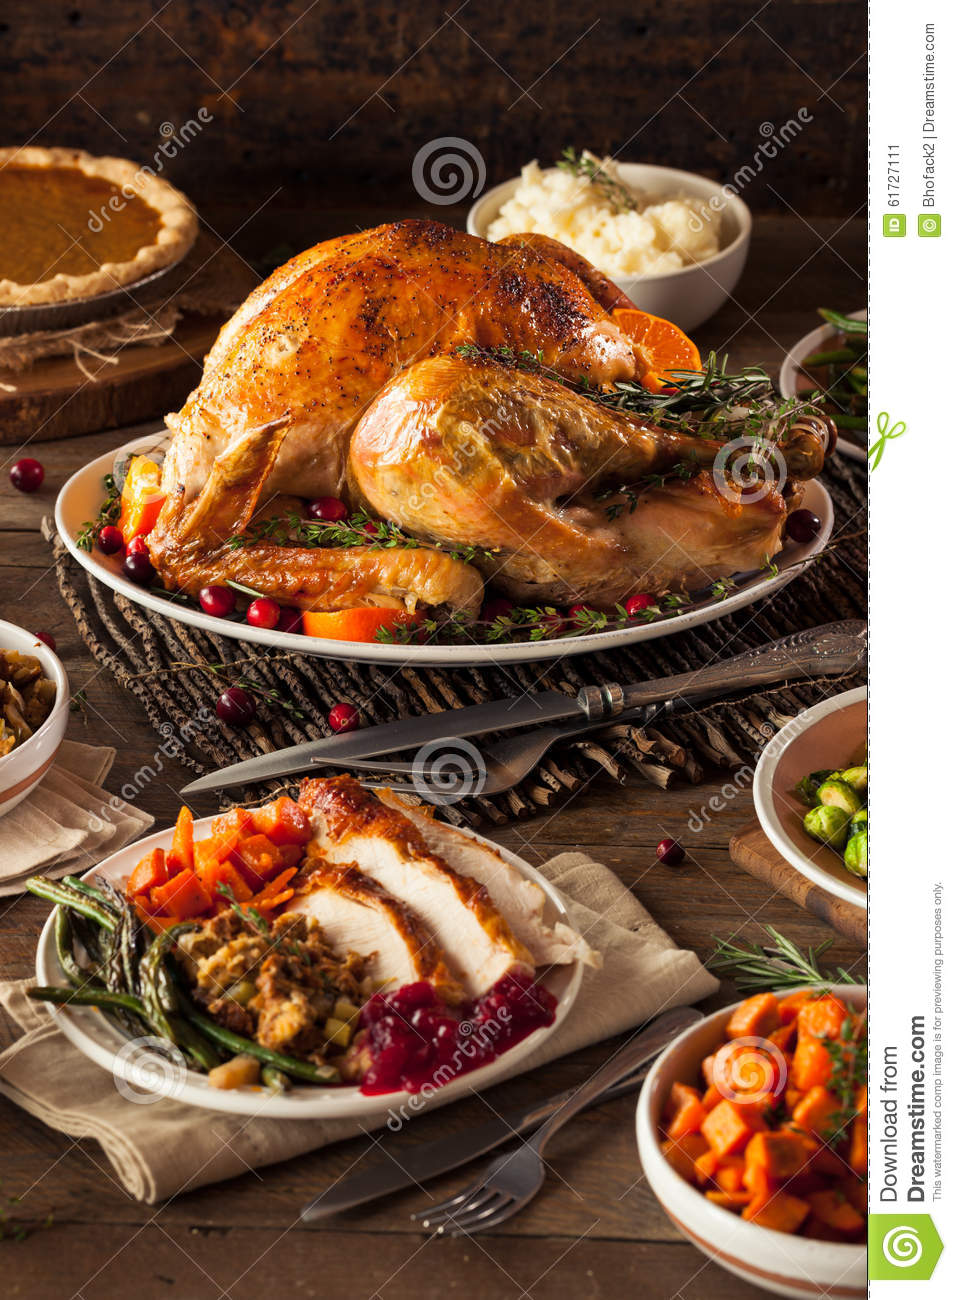 Turkey Day Hercules Style: Homemade Roasted Thanksgiving Day Turkey Royalty-Free